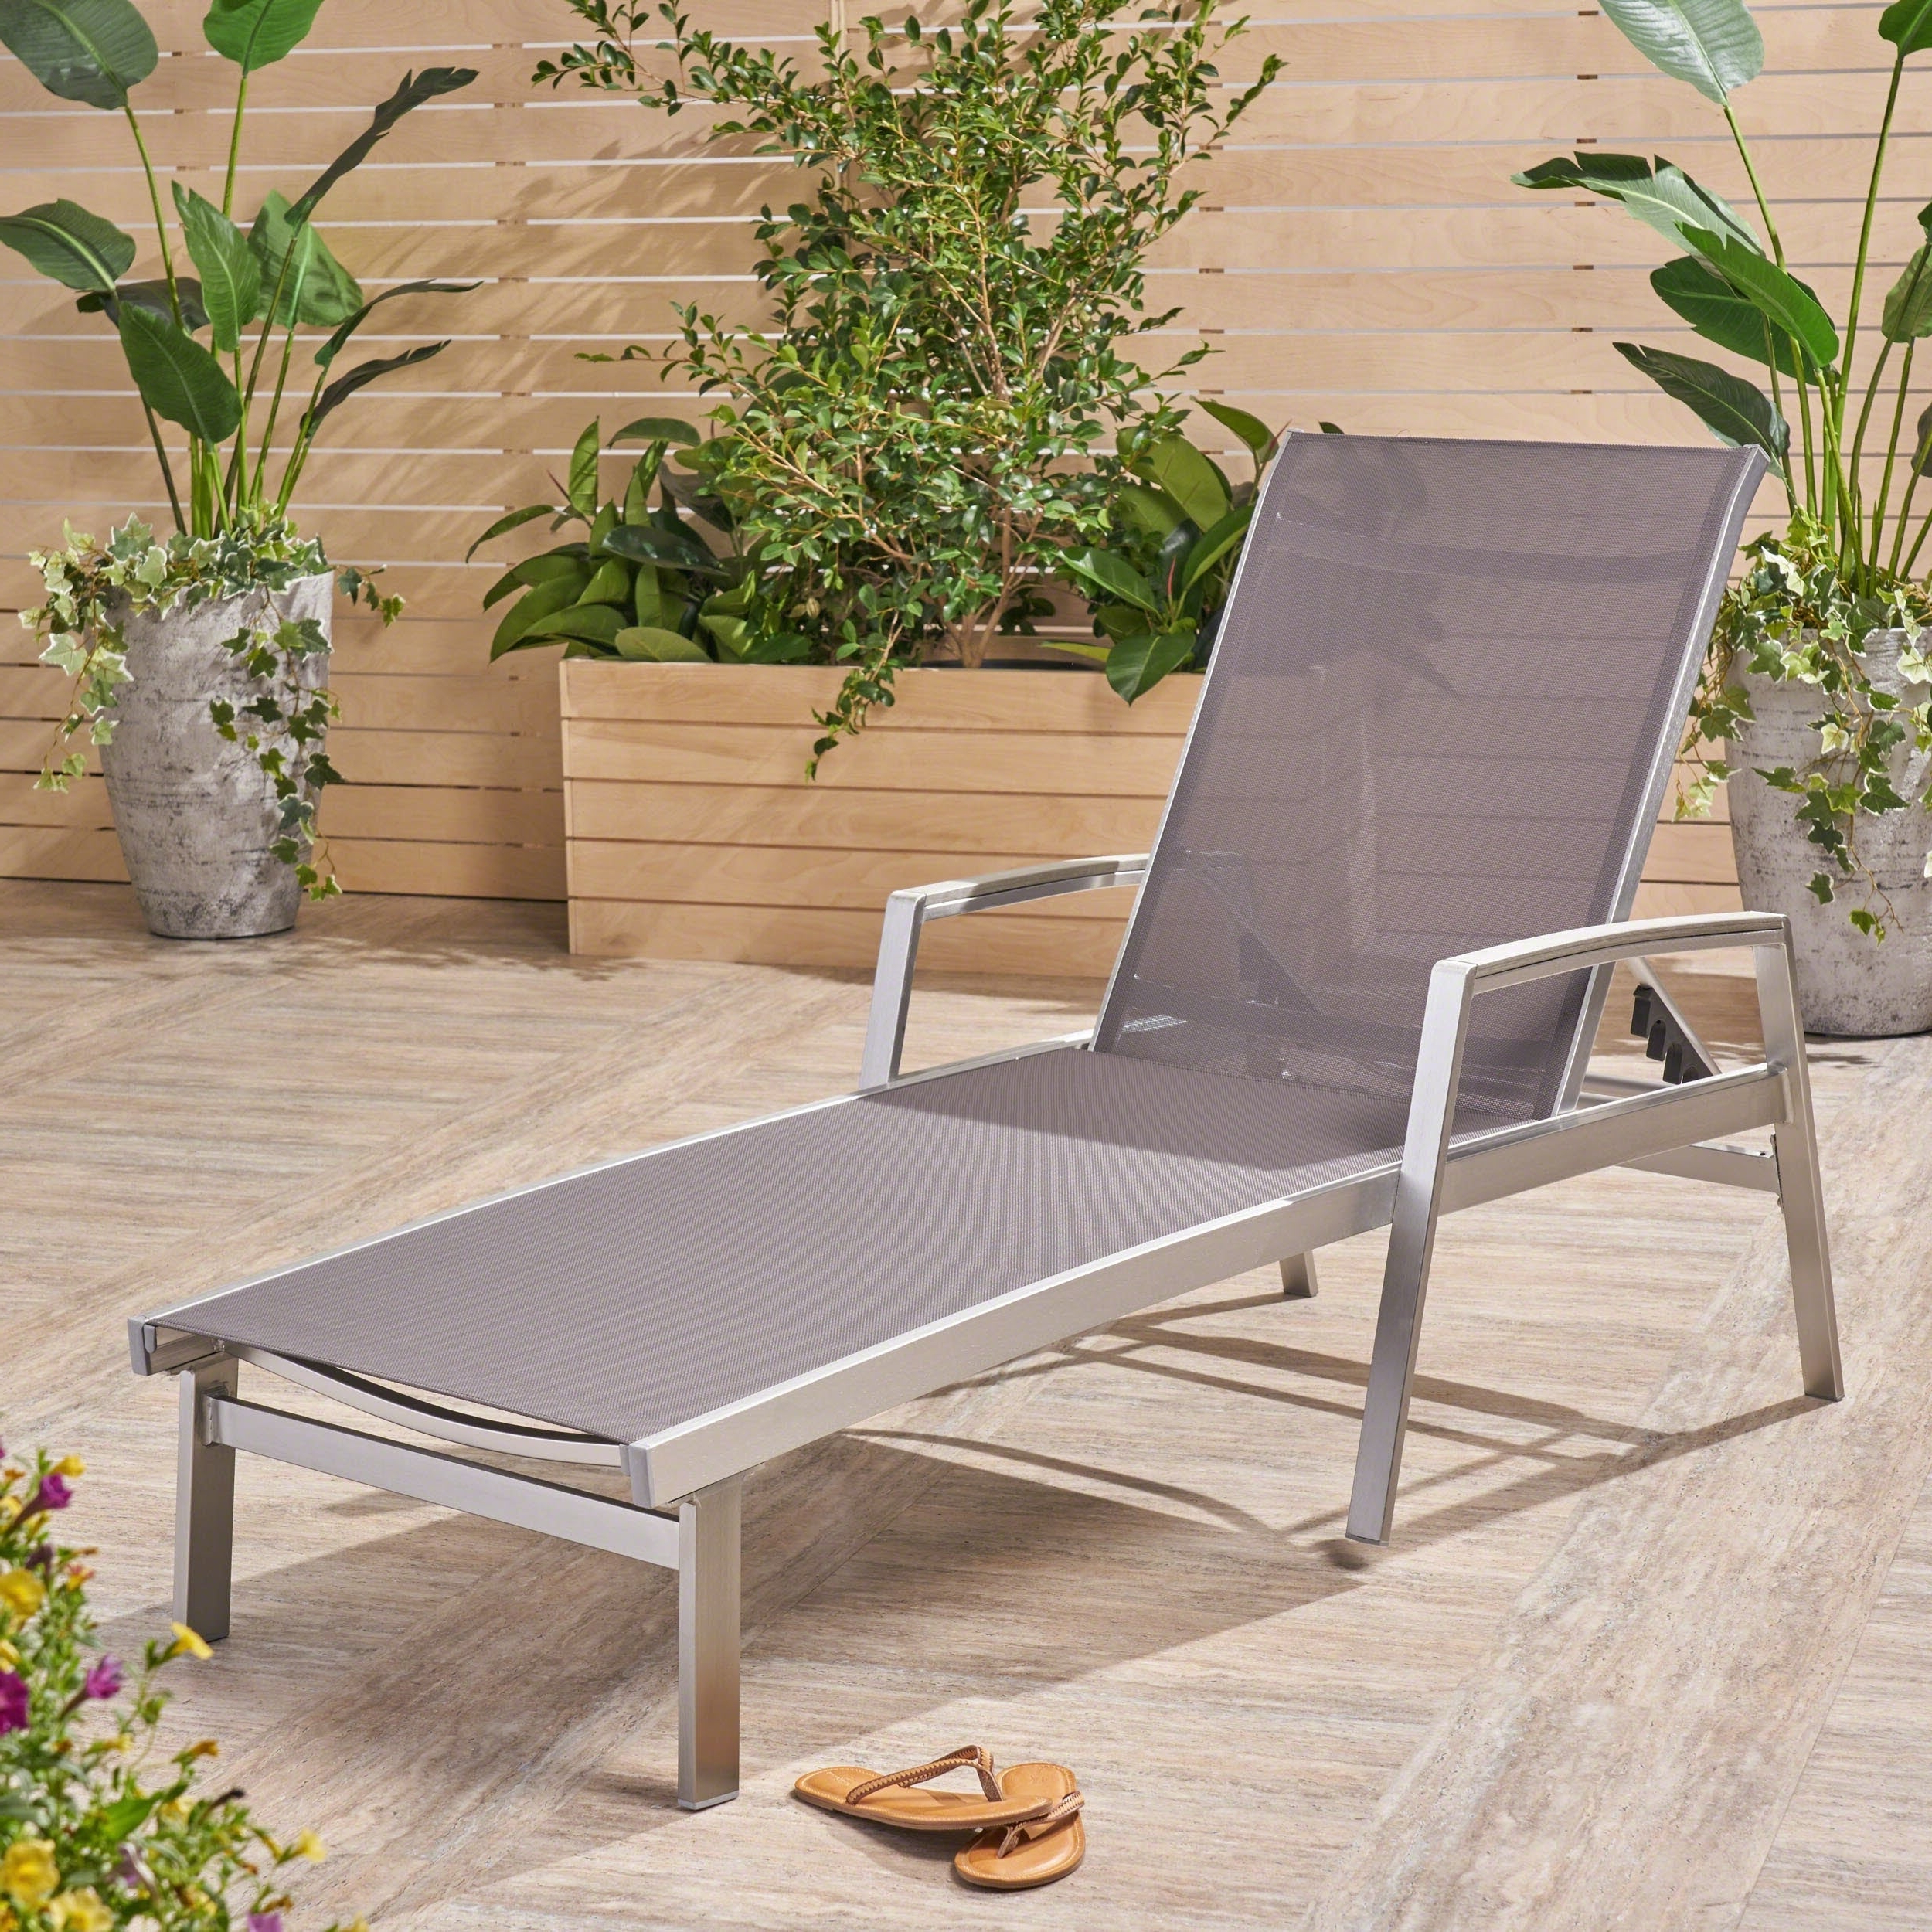 2020 Cosco Outdoor Aluminum Chaise Lounge Chairs Inside Oxton Outdoor Aluminum Chaise Loungechristopher Knight Home (View 12 of 25)